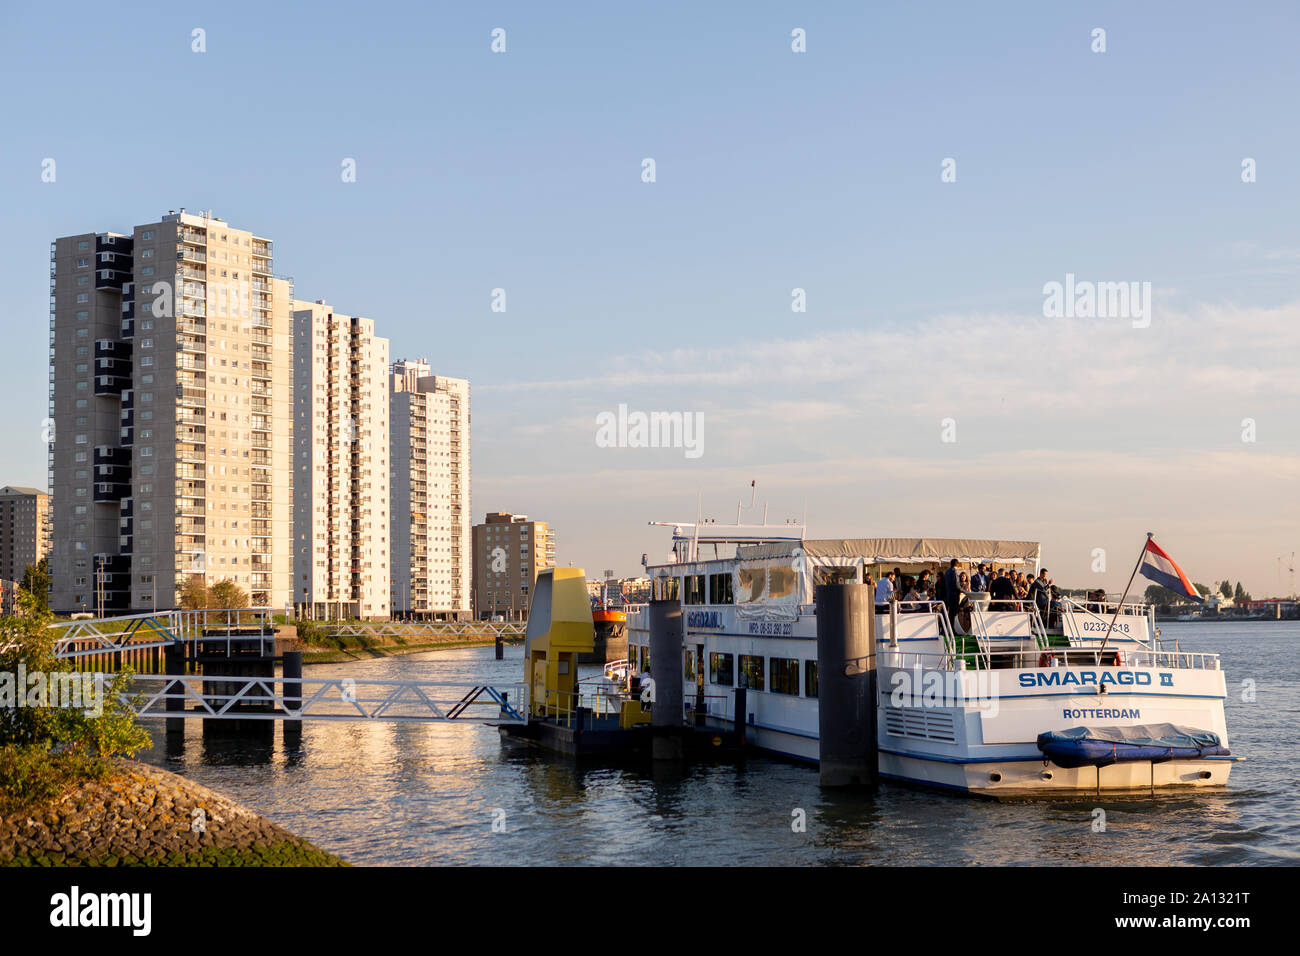 Party boat on the river Maas in the city centre of Rotterdam waiting to depart at sunset Stock Photo